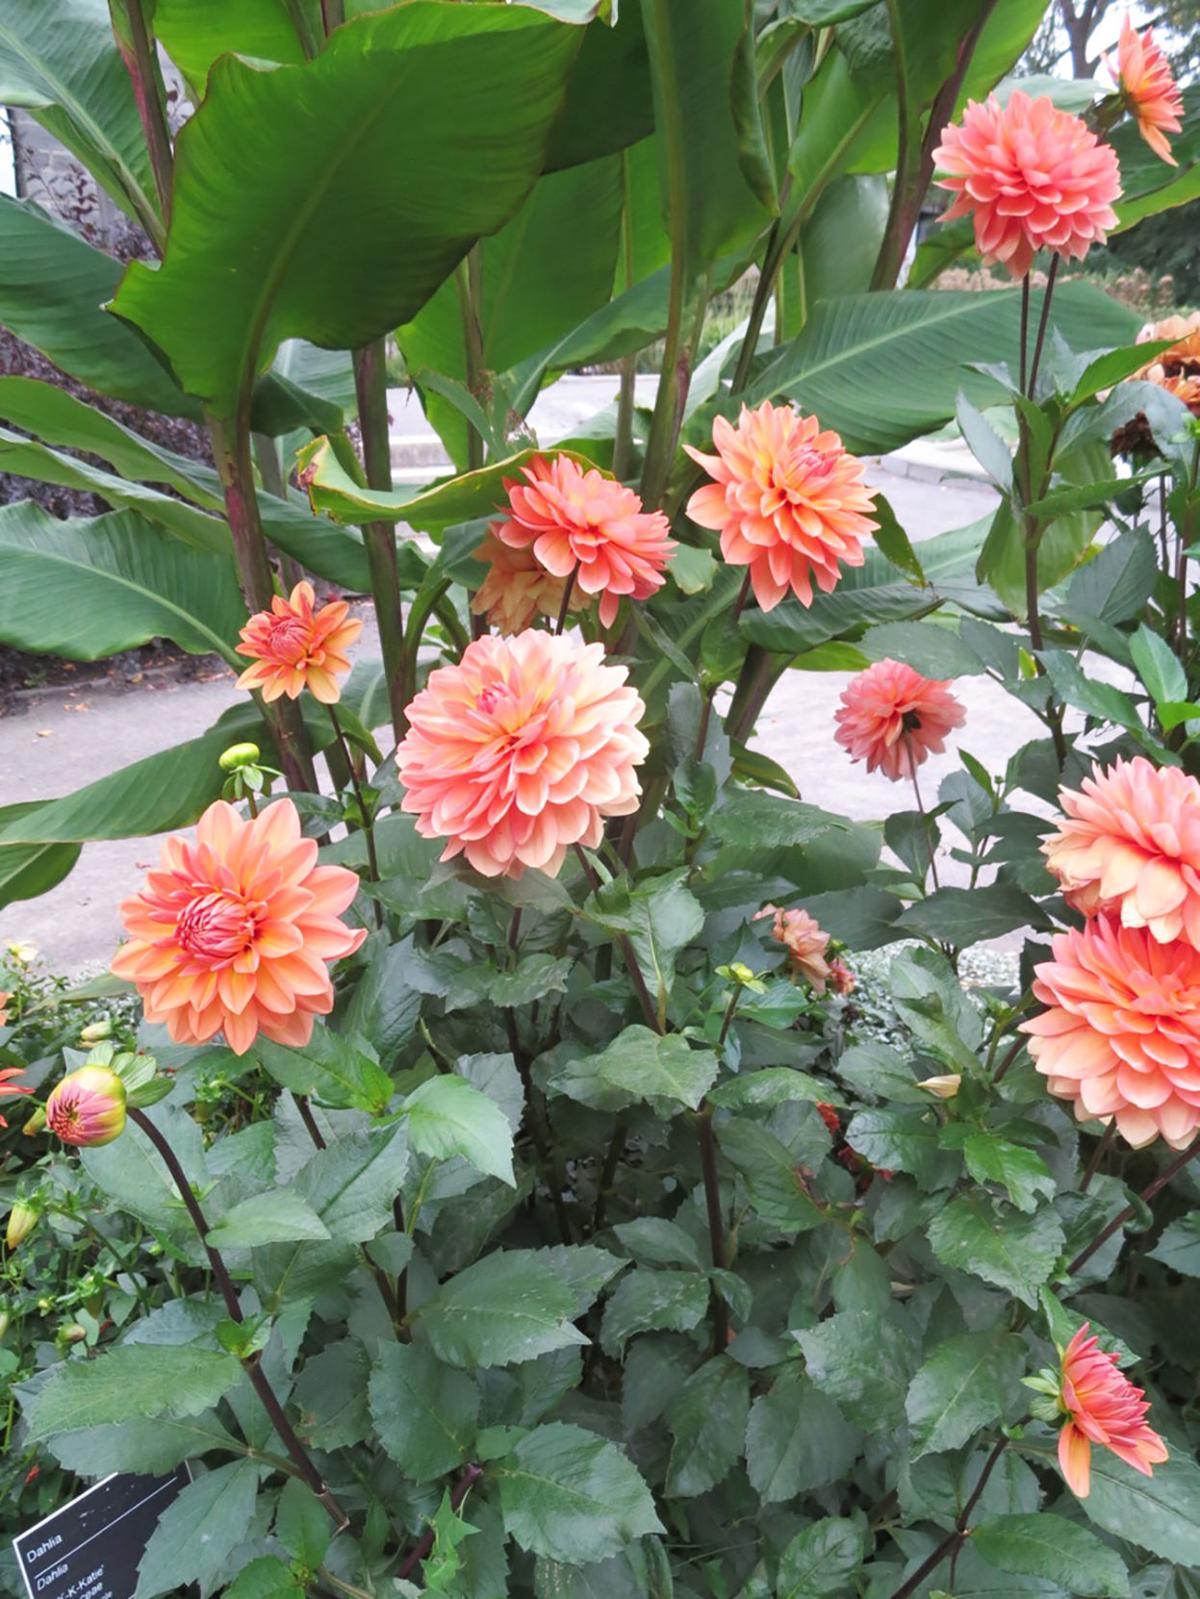 Elaine Sanders: Overwintering annuals indoors and tip cuttings will save money